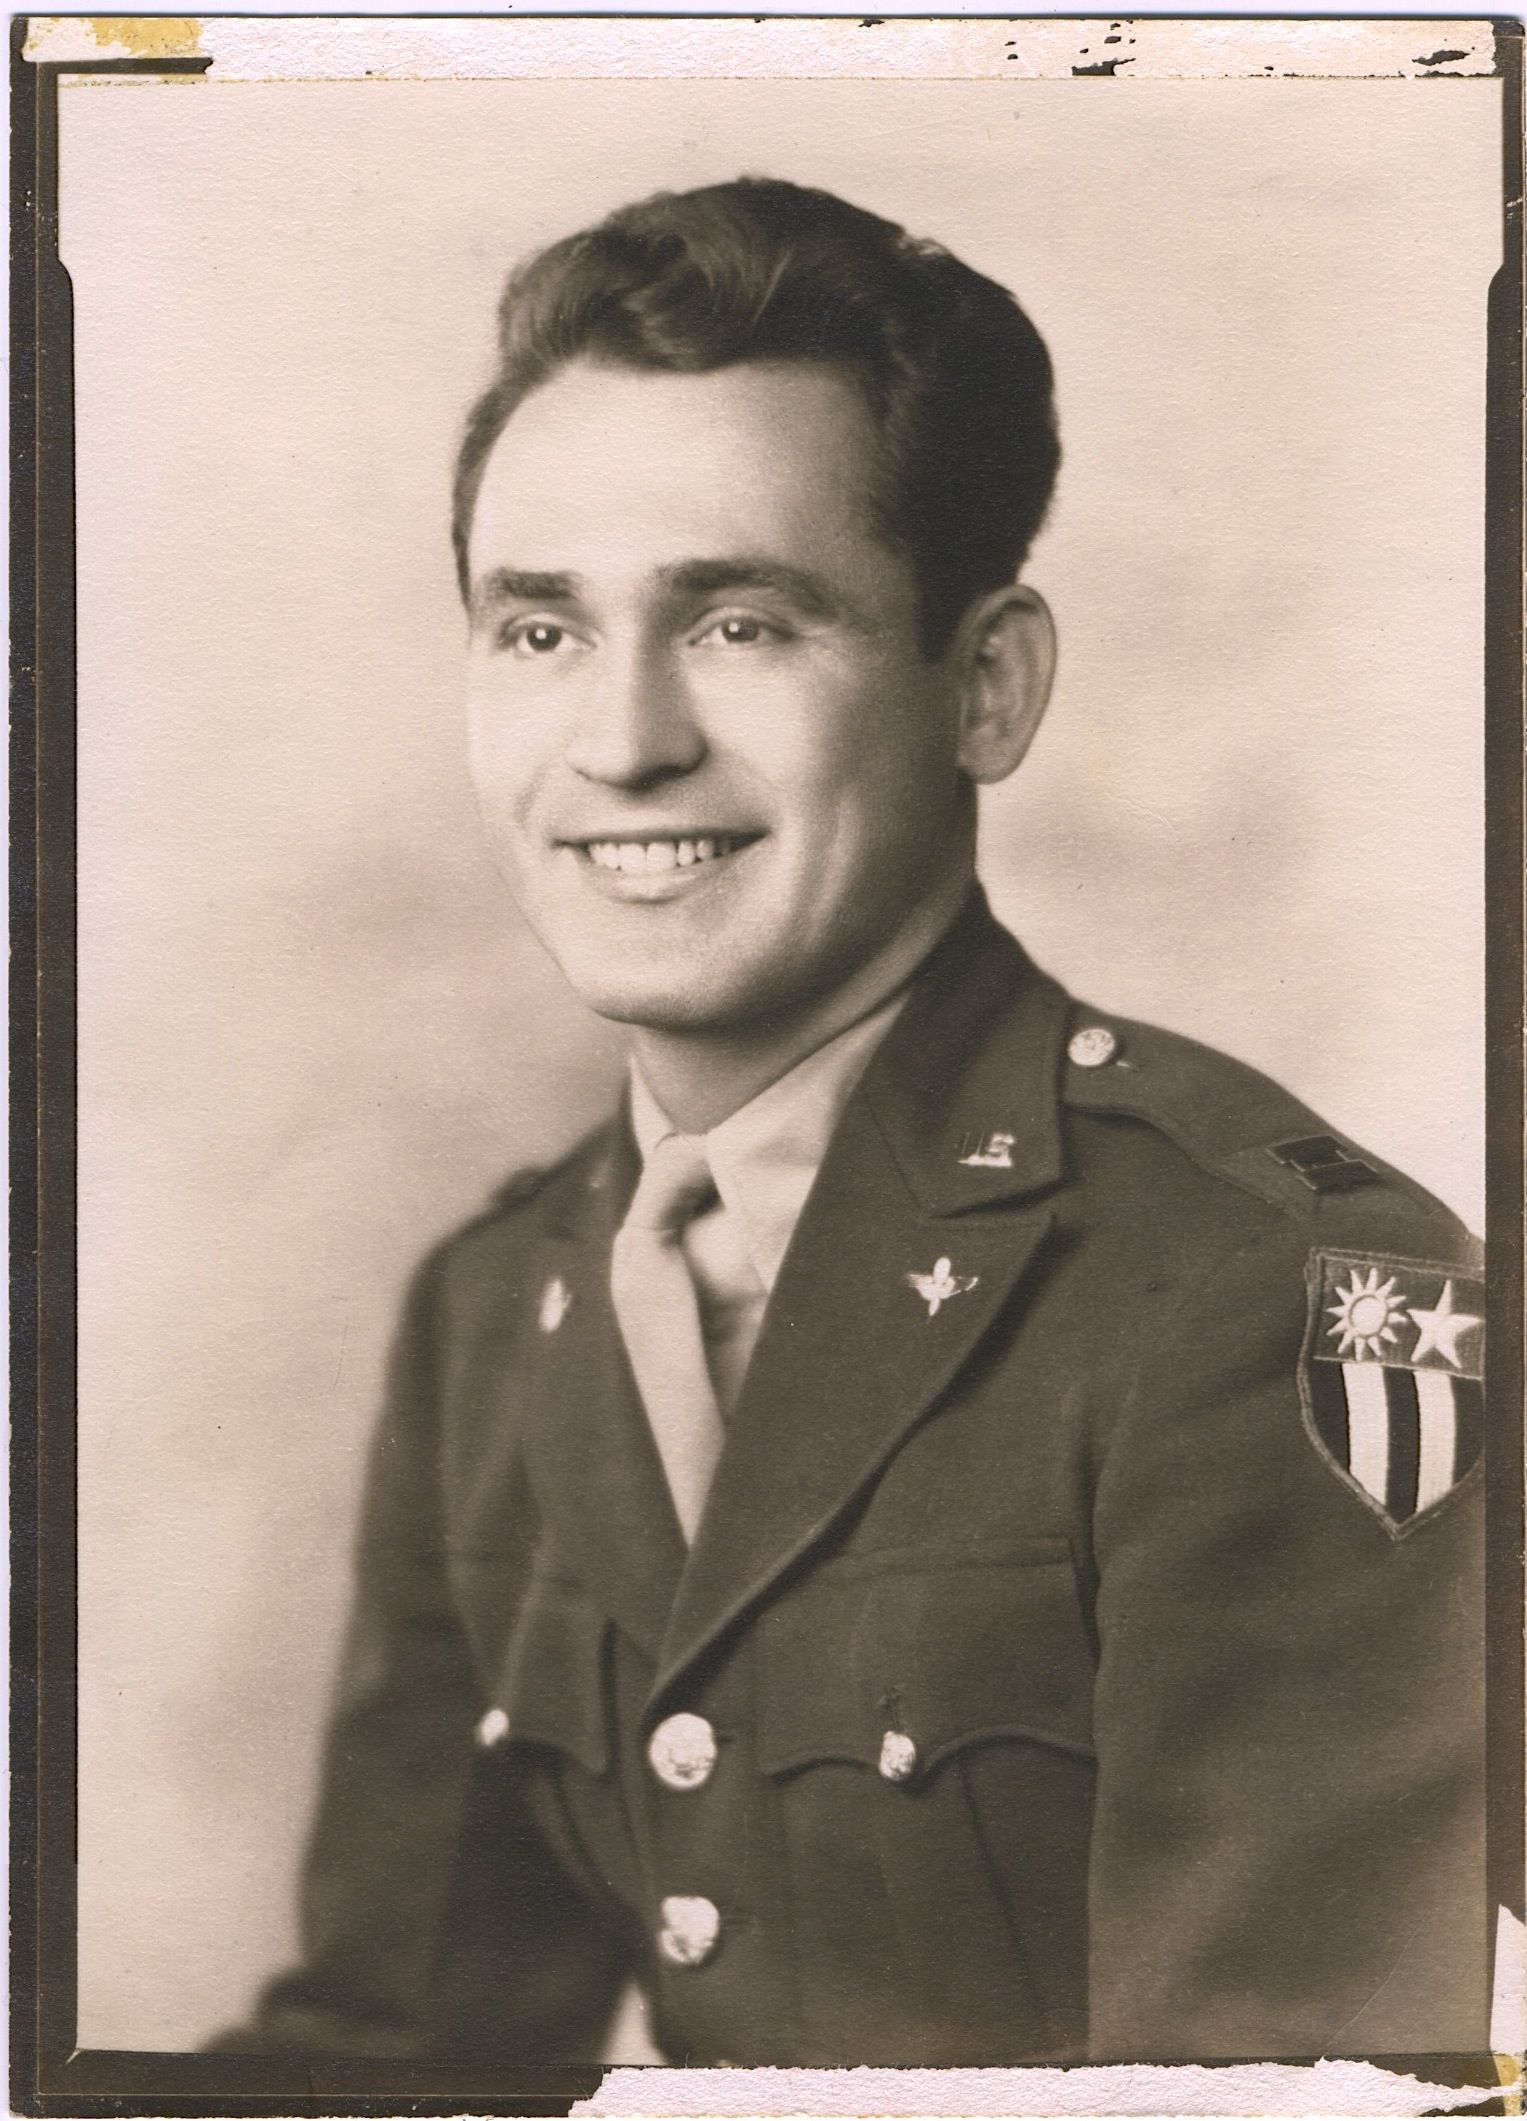 Major Andrew A. Barna, Army Air Corps.  Note China-Burma-India campaign shoulder patch, and AAC lapel pin OR Aviation Cadet badge.